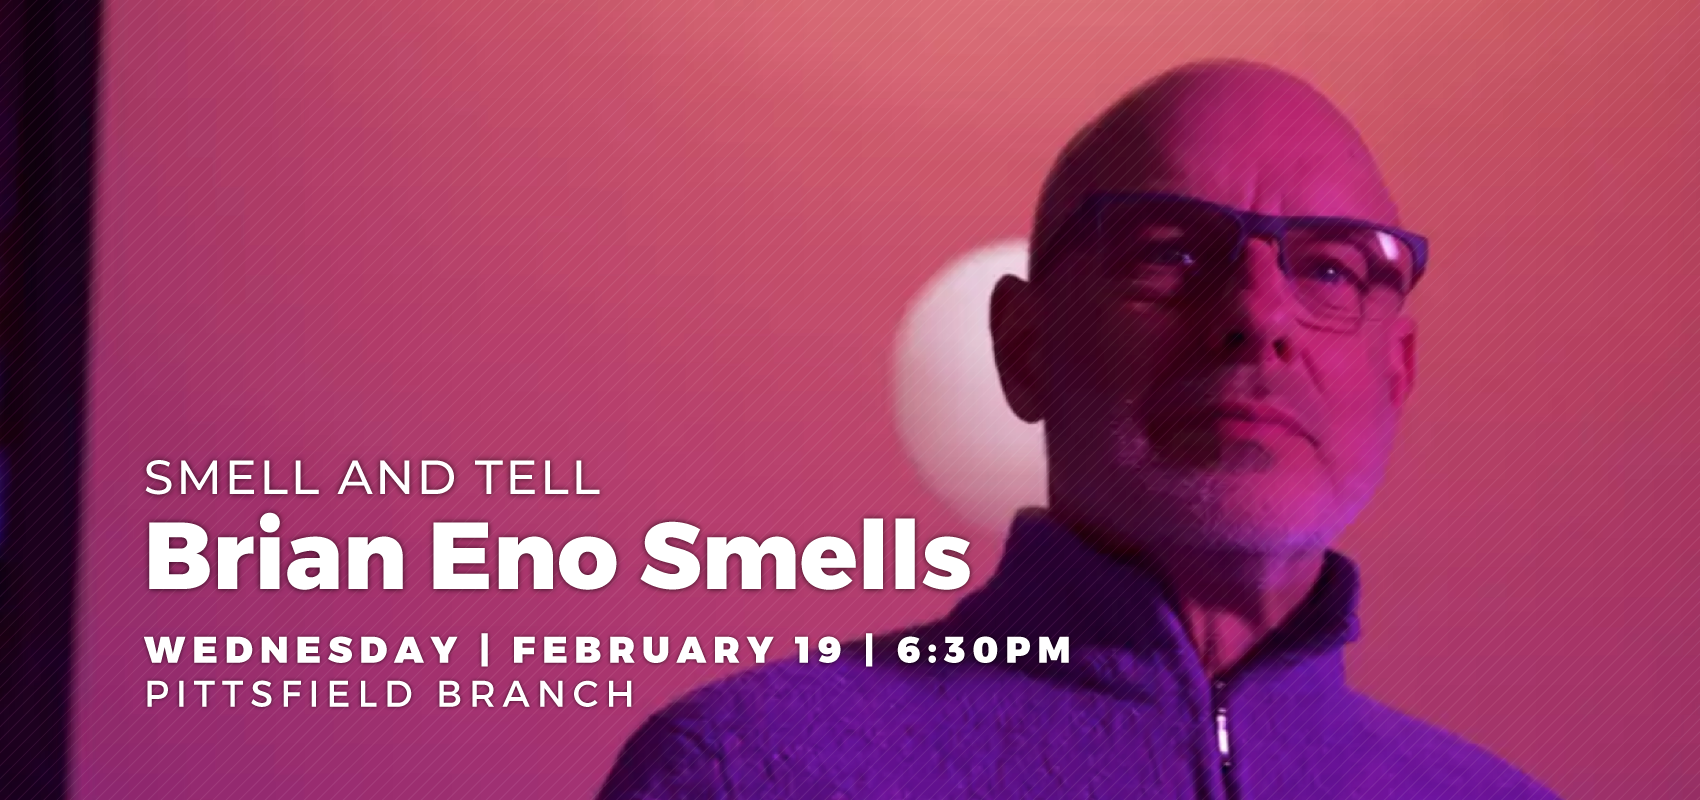 Smell and Tell: Brian Eno Smells. .